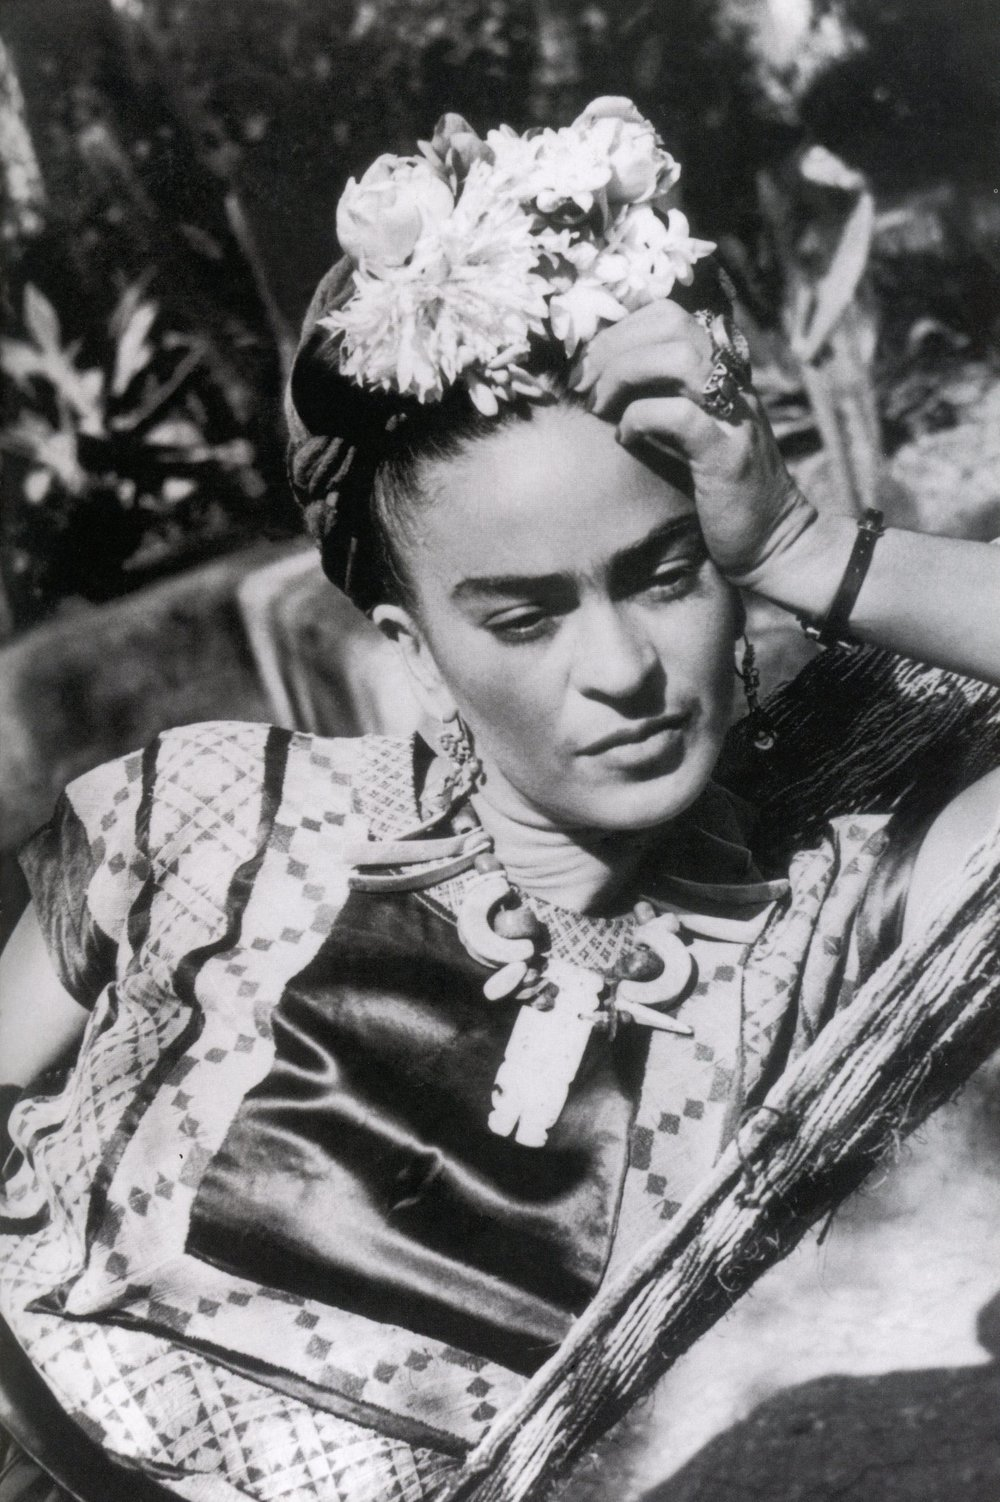 "Frida Kahlo, one of the GREATS™.  She was a renowned surrealist, Mexican painter who inspired many with her art work.  She once said, ""Feet, what do I need you for when I have wings to fly?"" affirming her own greatness."